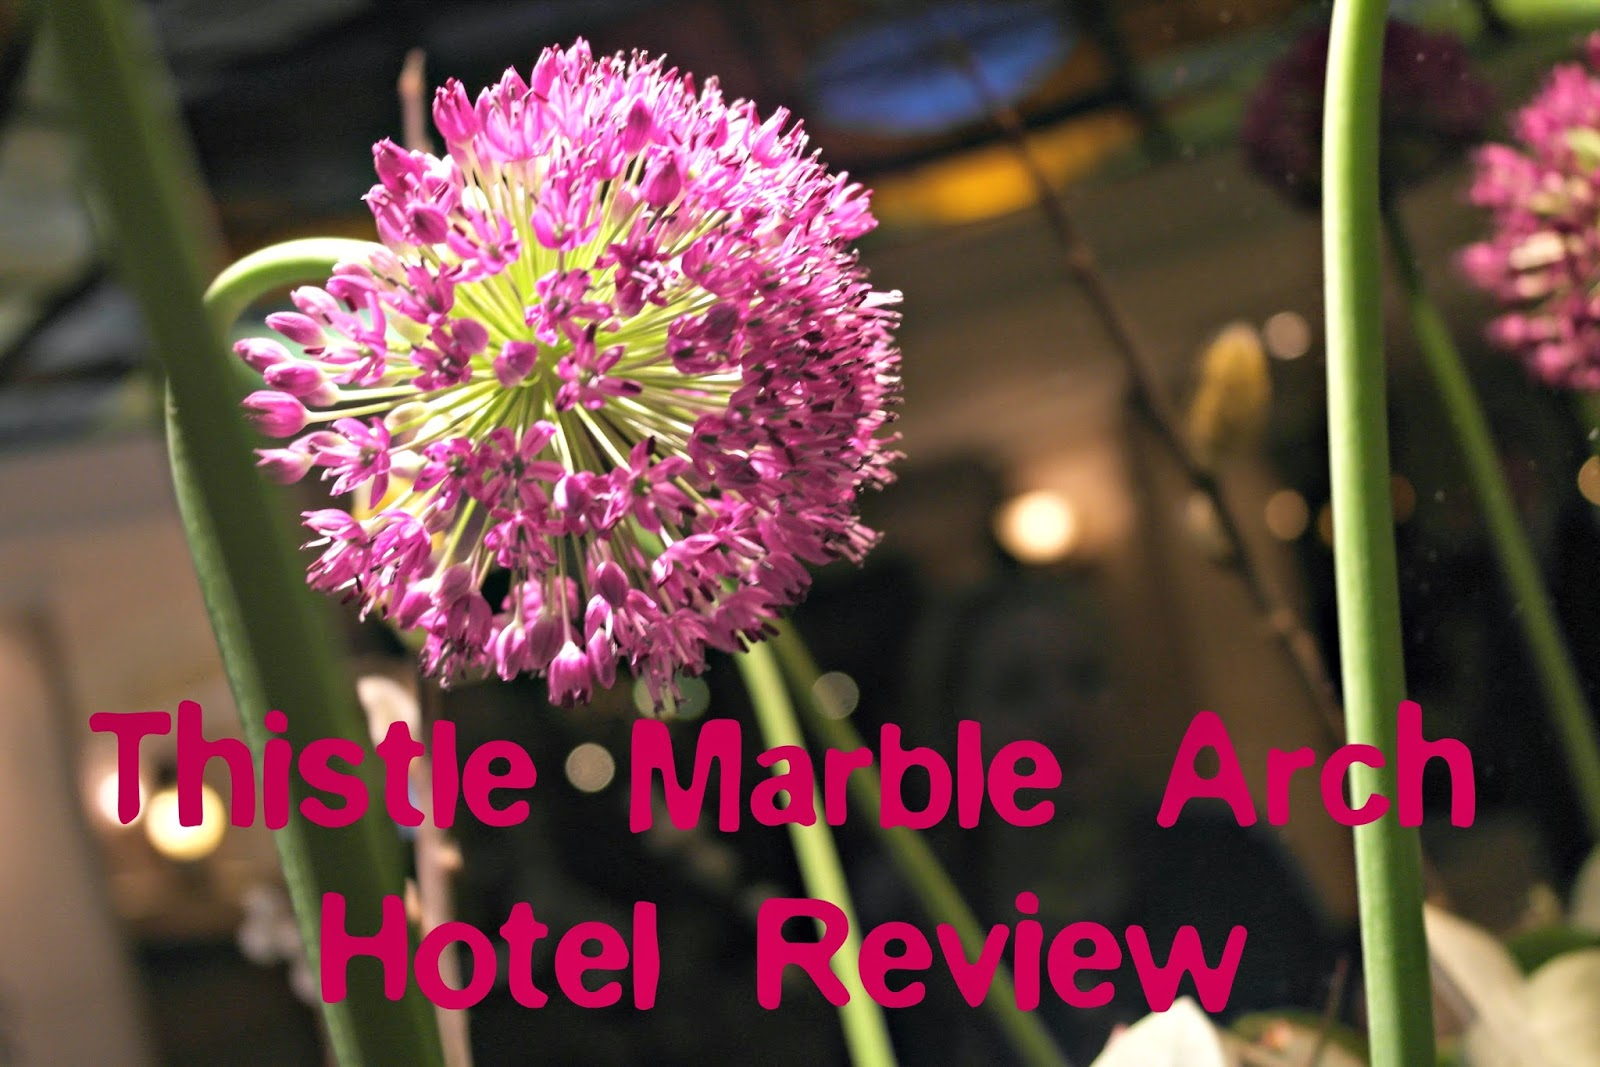 http://www.thistle.com/en/hotels/united_kingdom/london/thistle_marble_arch/index.html